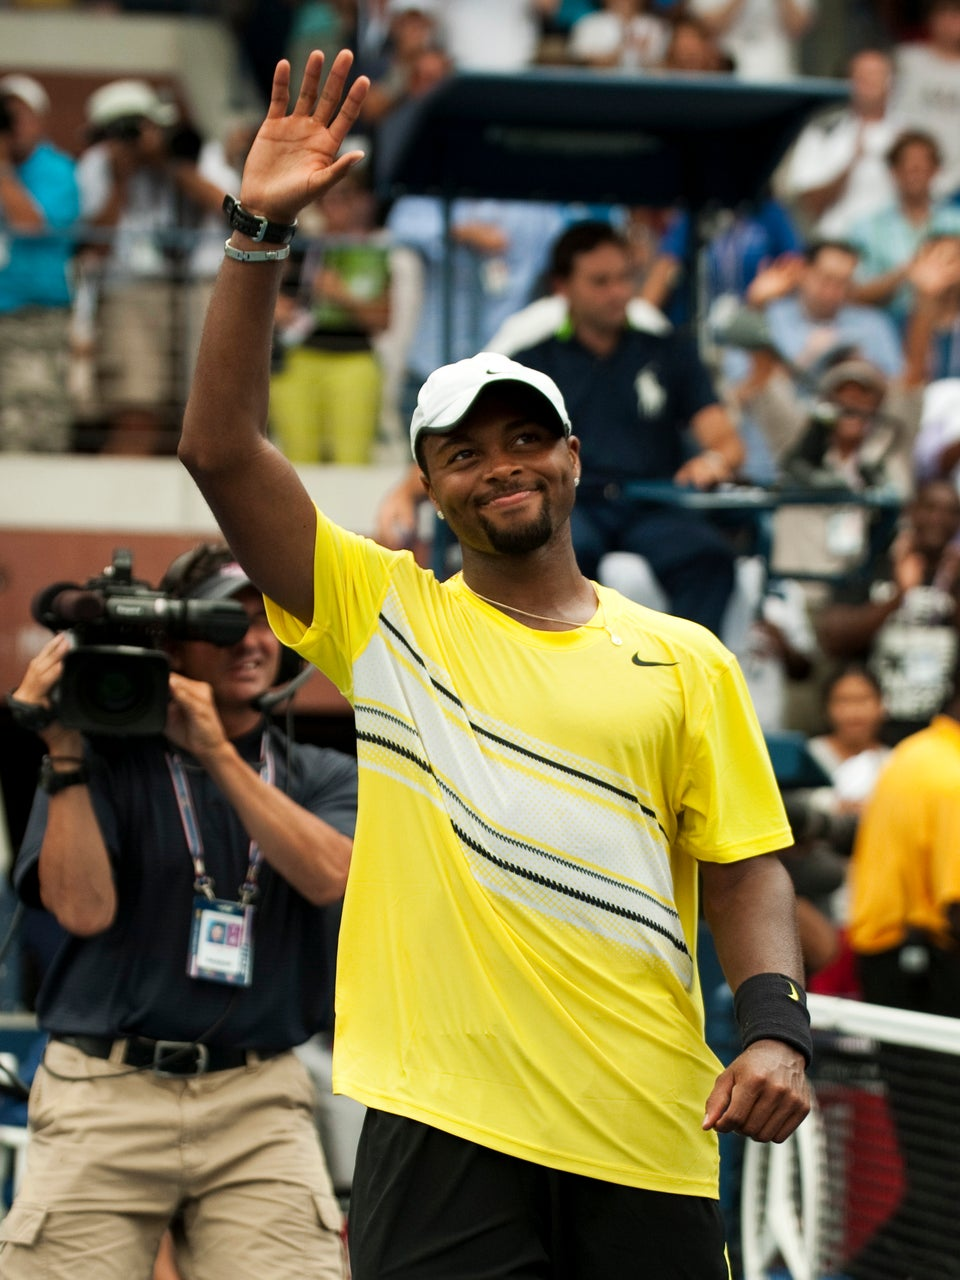 Donald Young Reaches Round 4 of Grand Slam